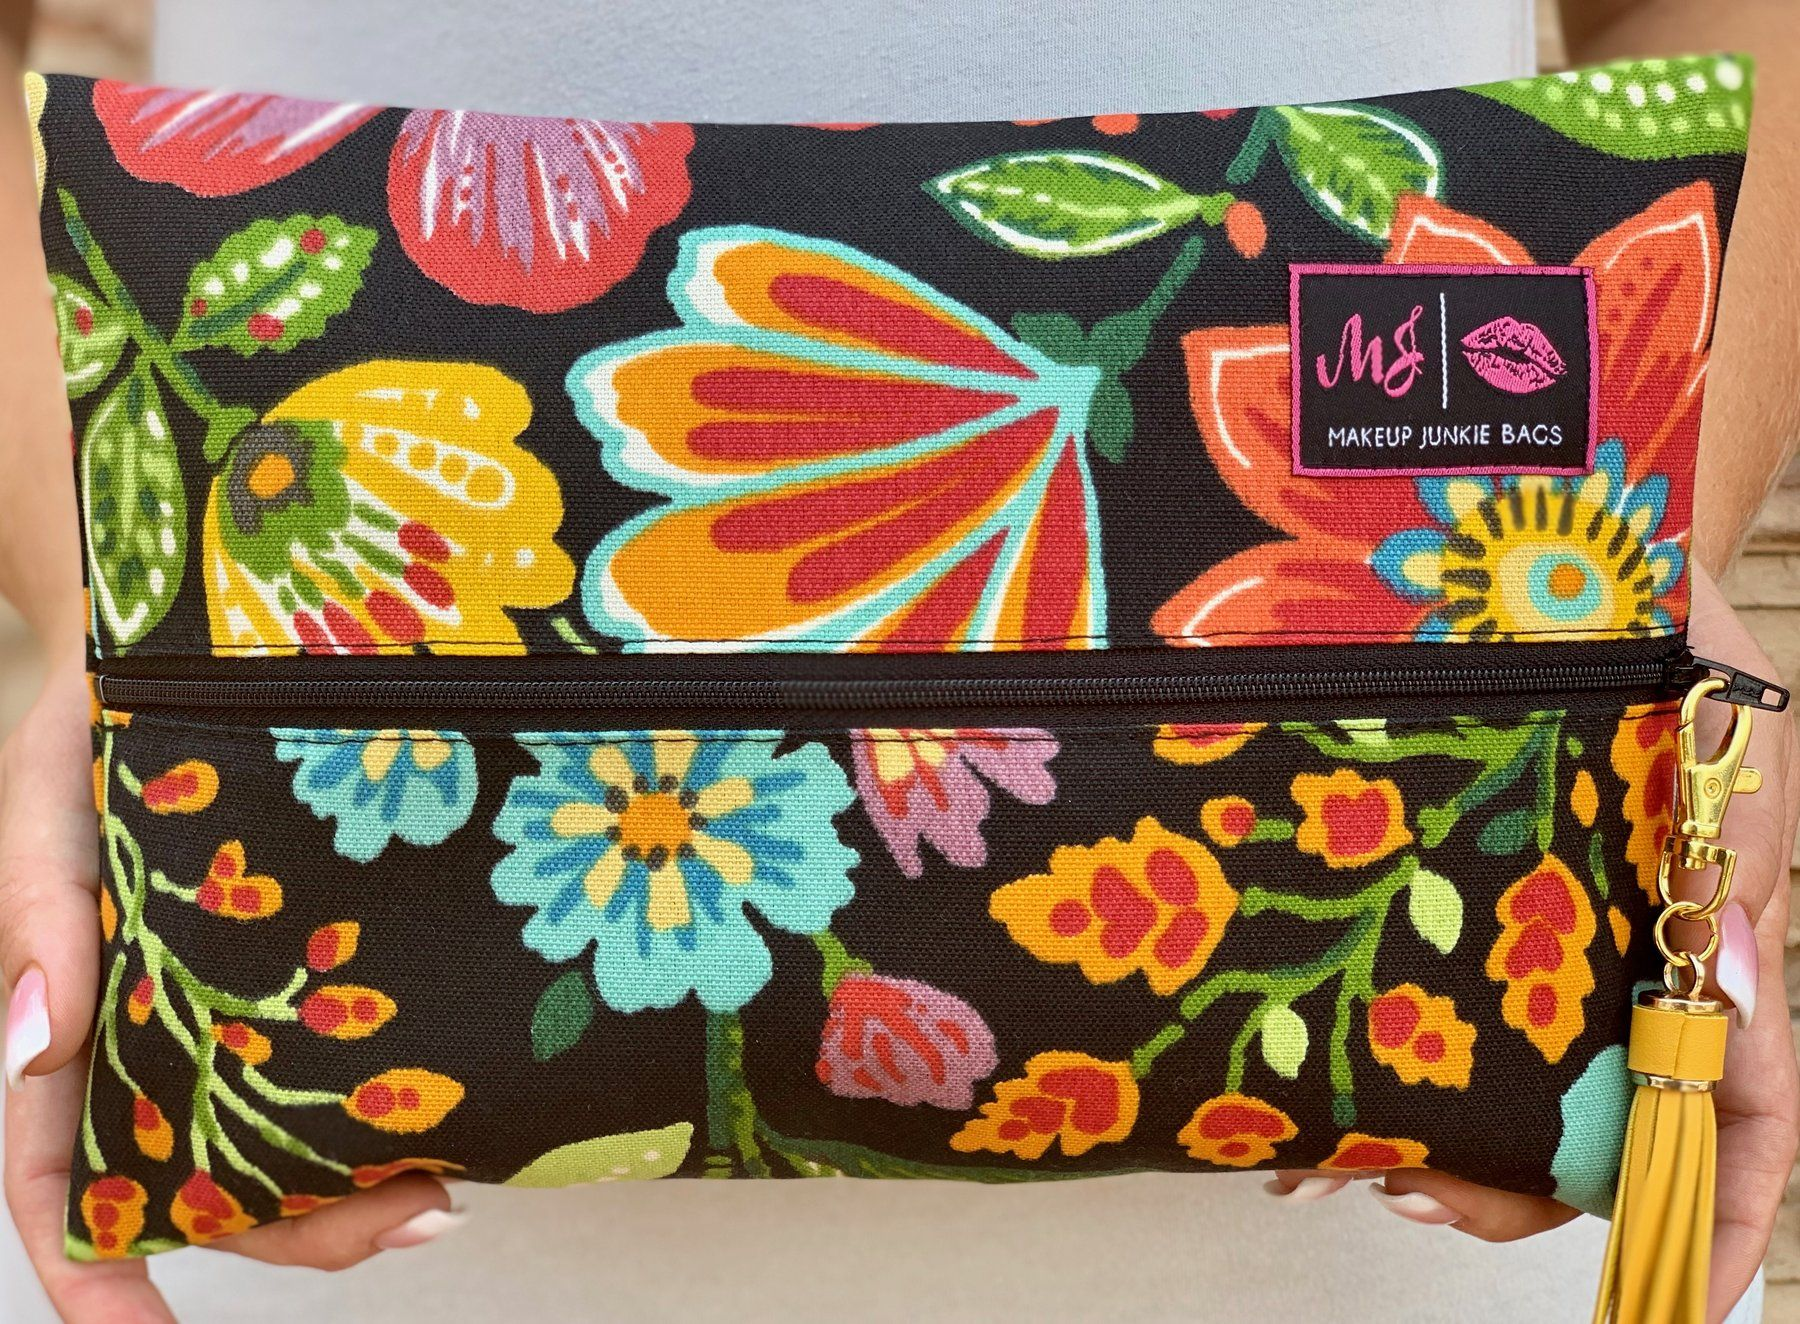 Black Floral Makeup Junkie Bag (With images) Black